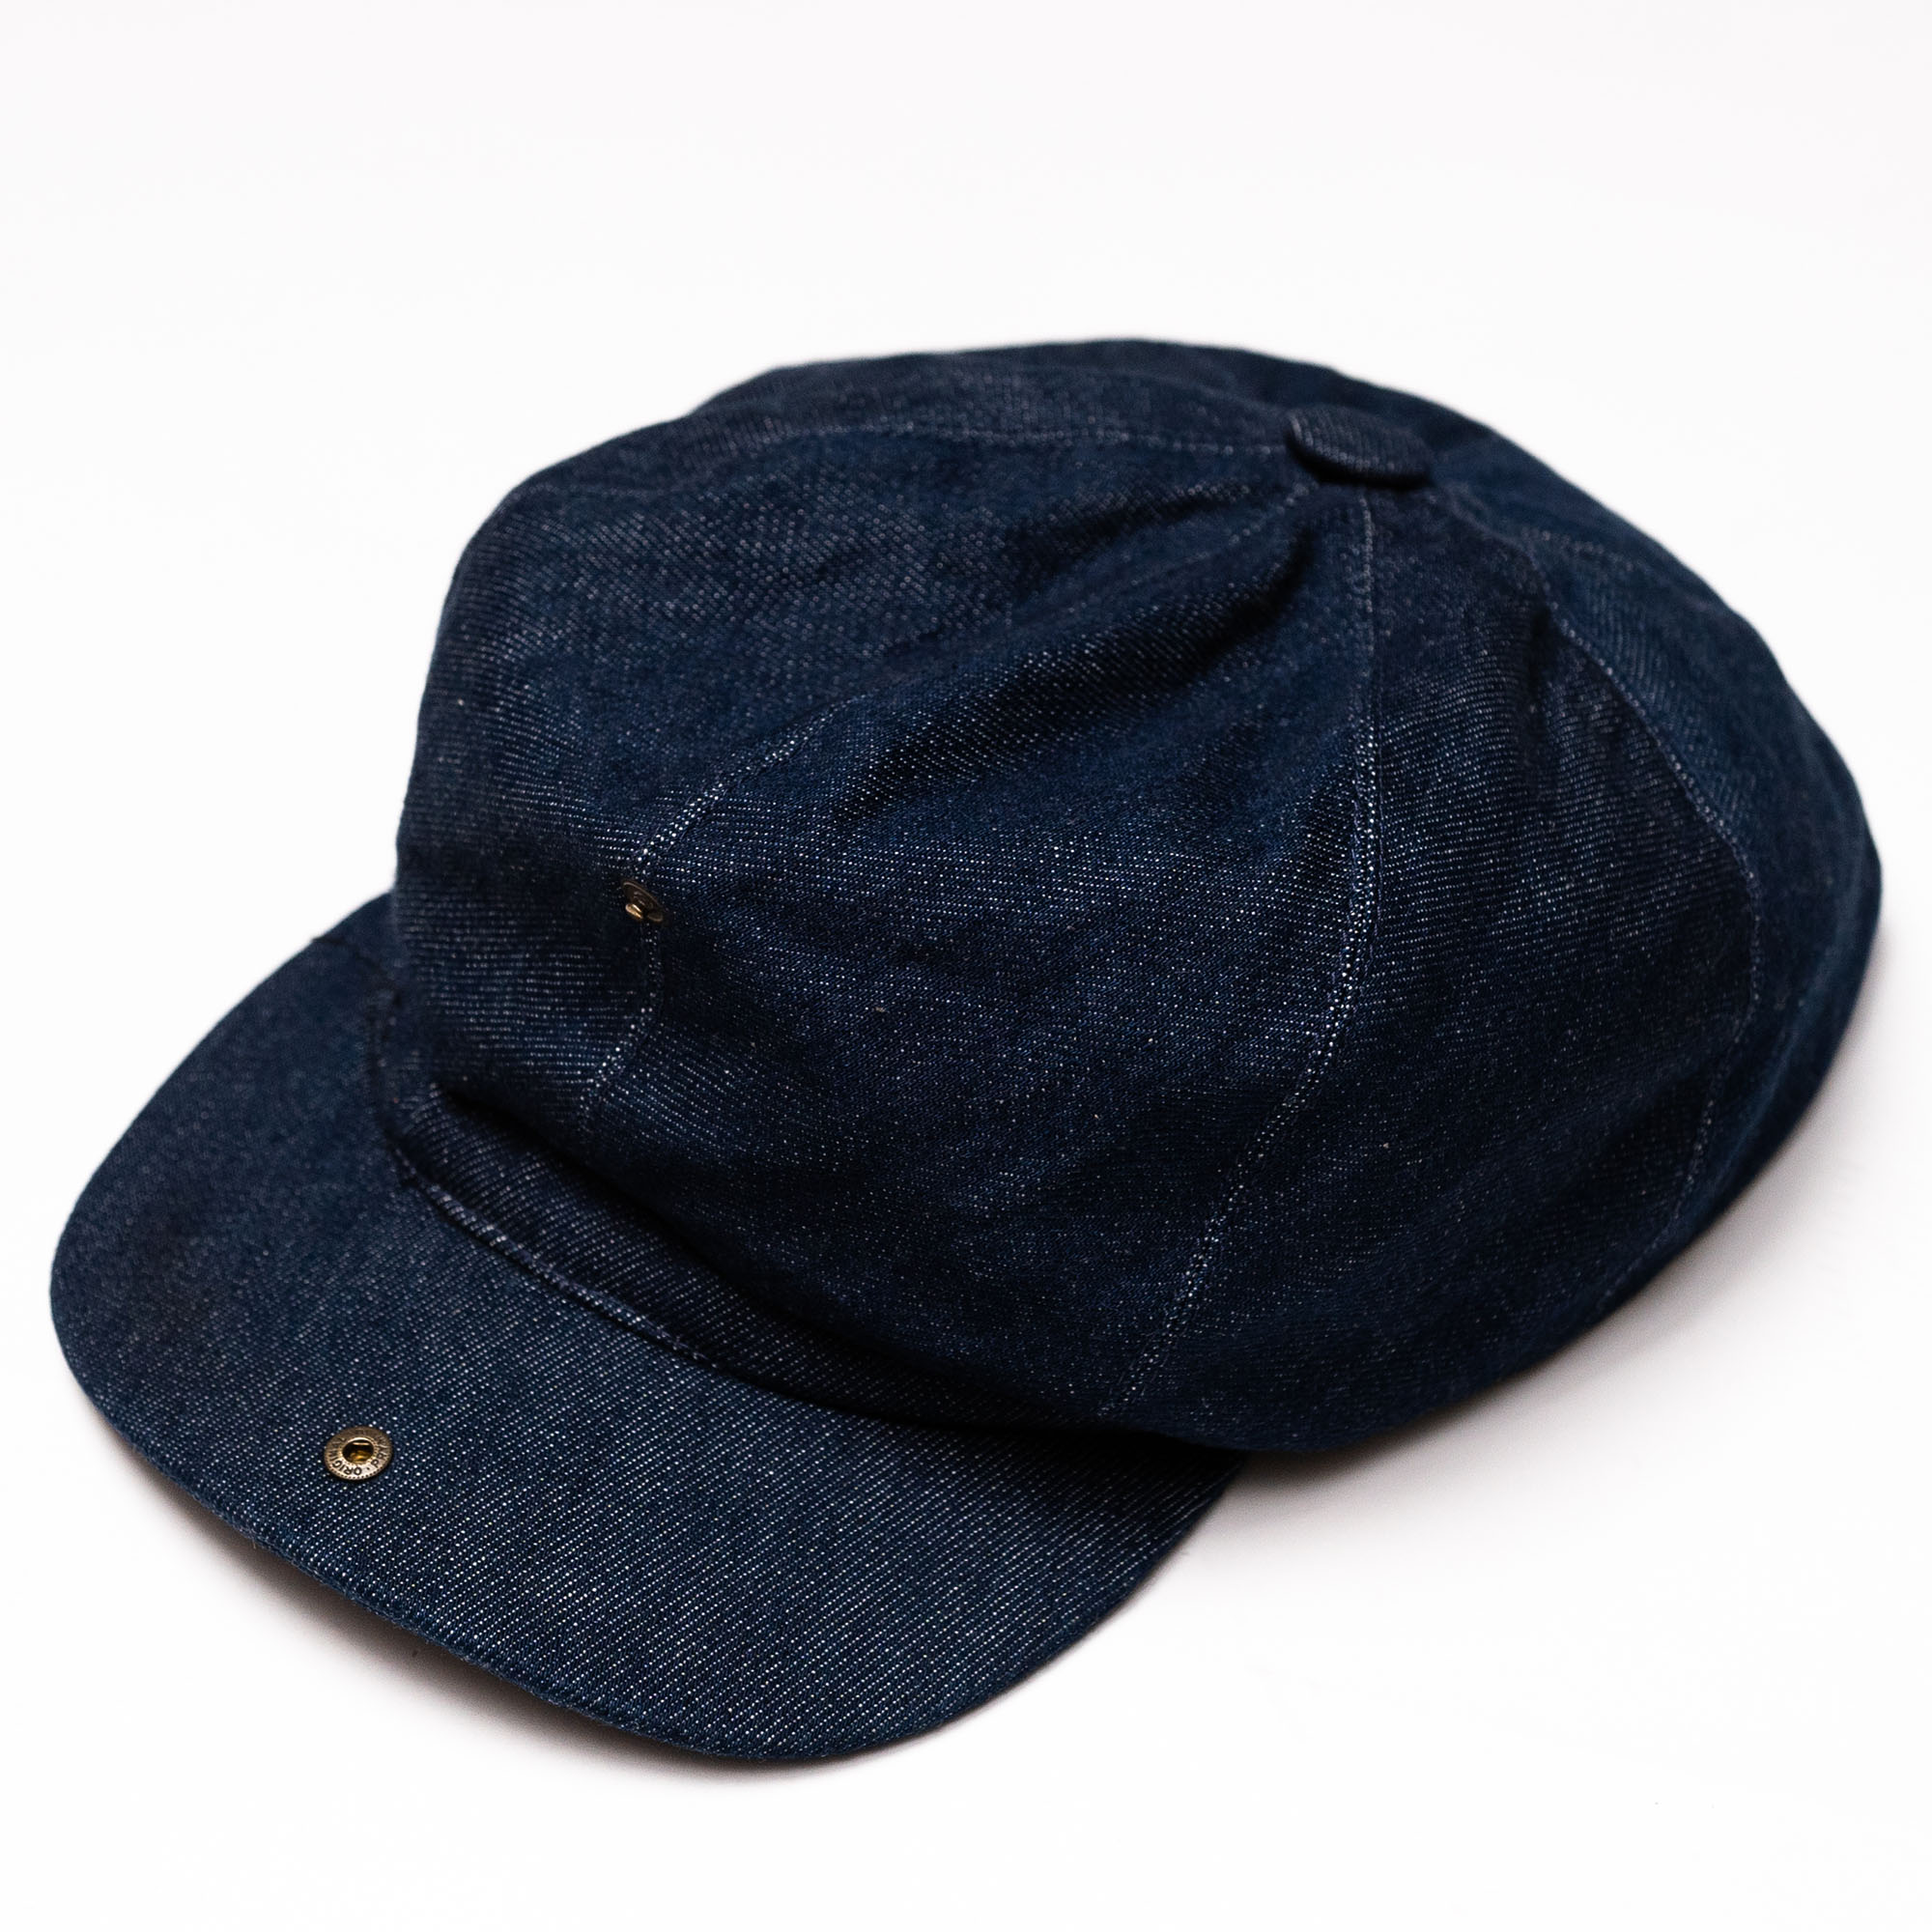 shangri-la-heritage-outlaw-selvedge-candiani-denim-8-panel-riders-cap-still-life-open